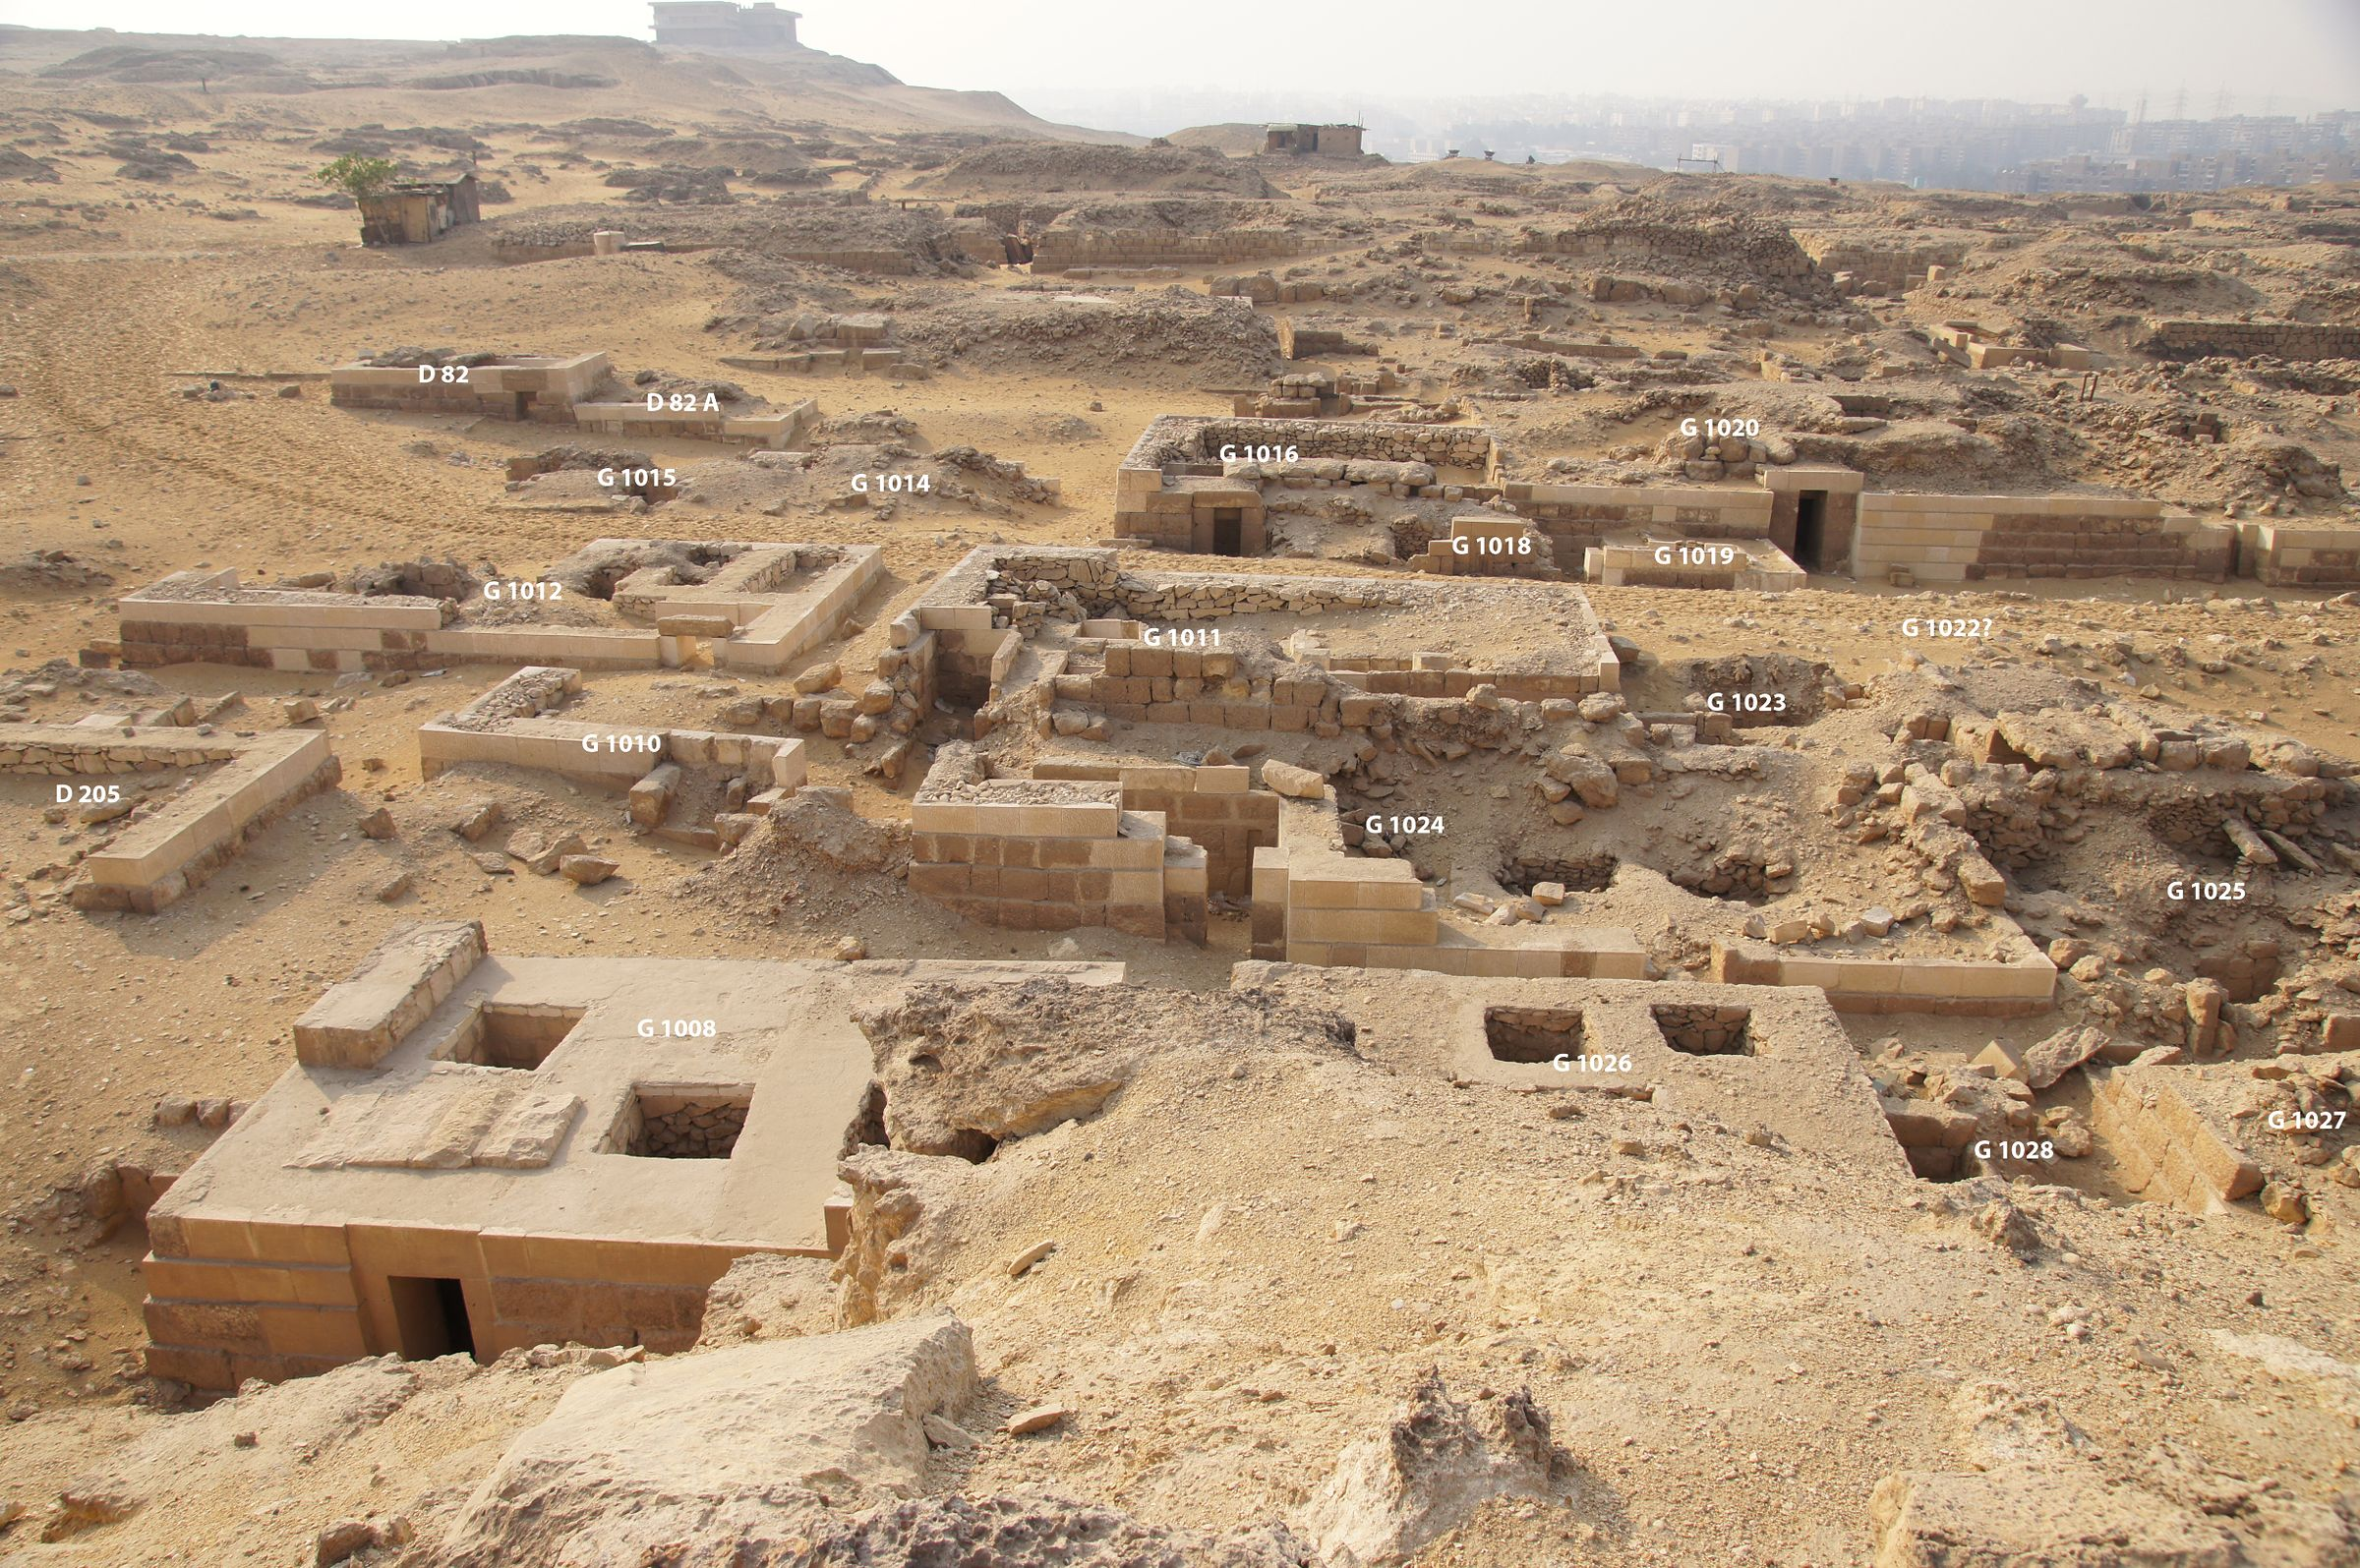 Western Cemetery: Site: Giza; View: G 1008, G 1026, G 1028, G 1027, D 205, G 1010, G 1024, G 1025, G 1012, G 1011, G 1023, G 1022?, G 1015, G 1014, G 1016, G 1018, G 1019, G 1020, D 82+82 A